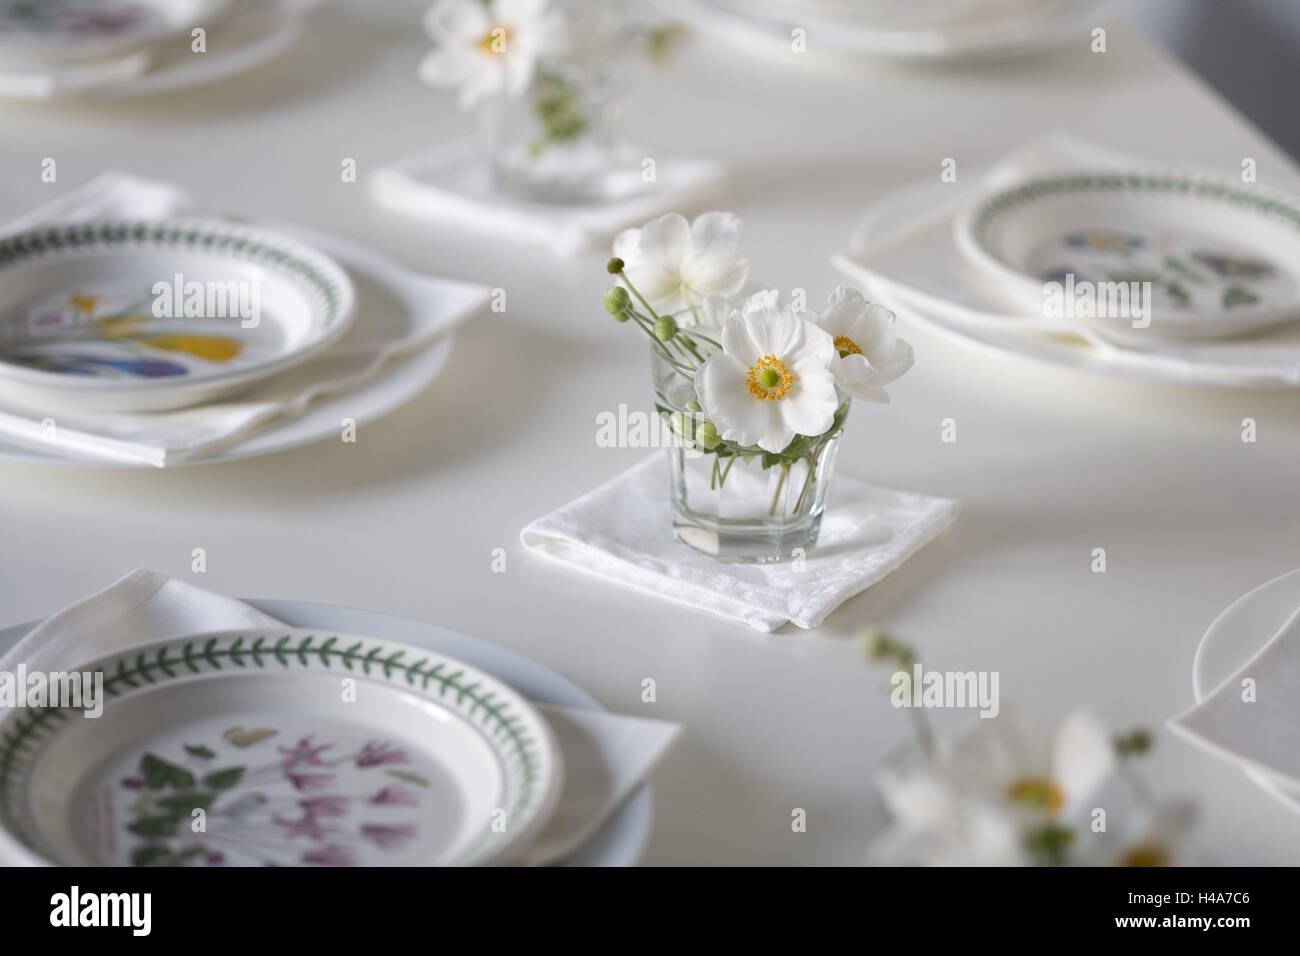 Laid table, plate, glasses with white Chinese anemones, - Stock Image